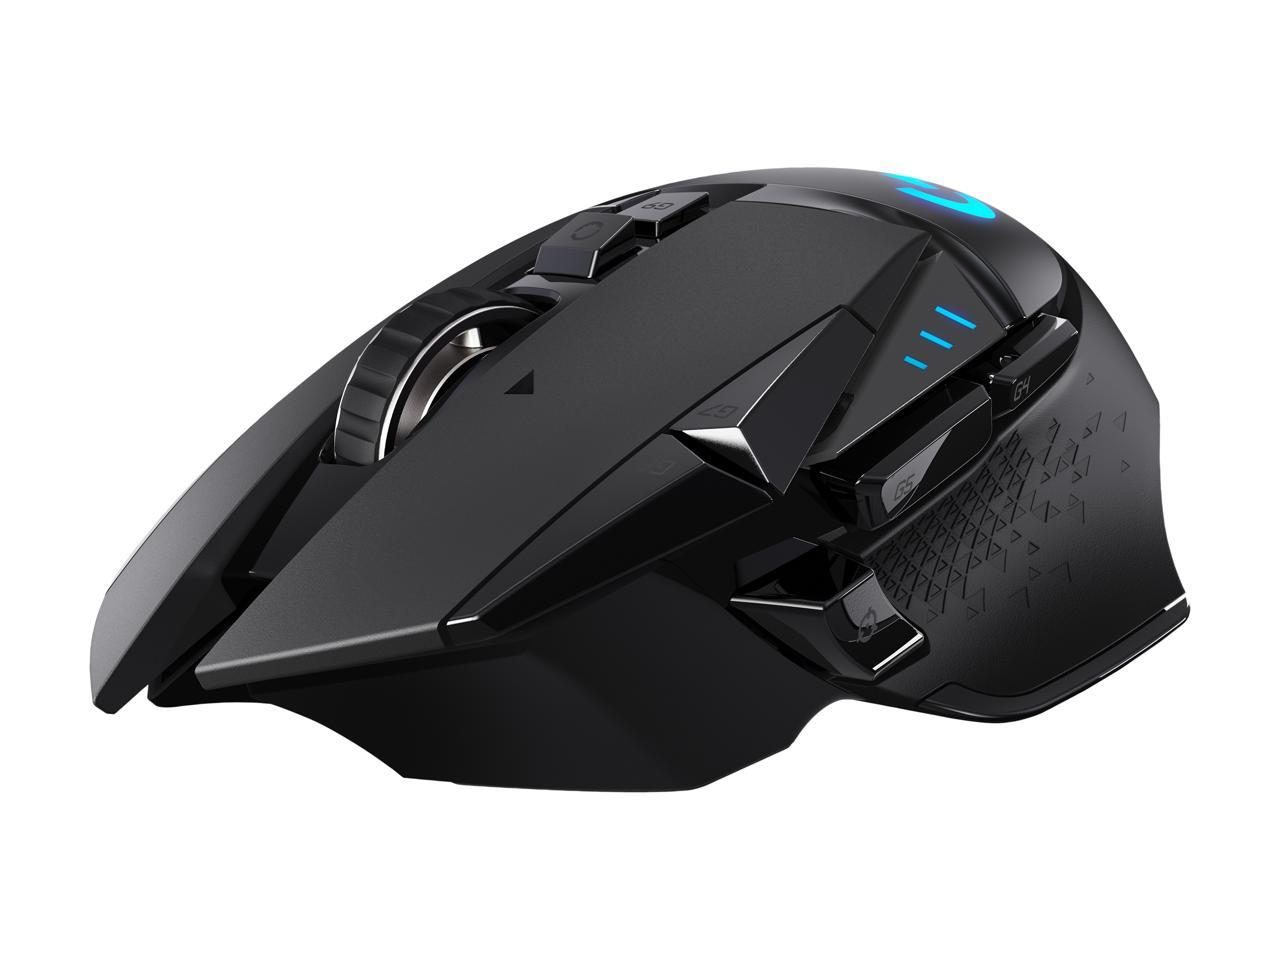 Logitech G502 Lightspeed Wireless Gaming Mouse 910-005565